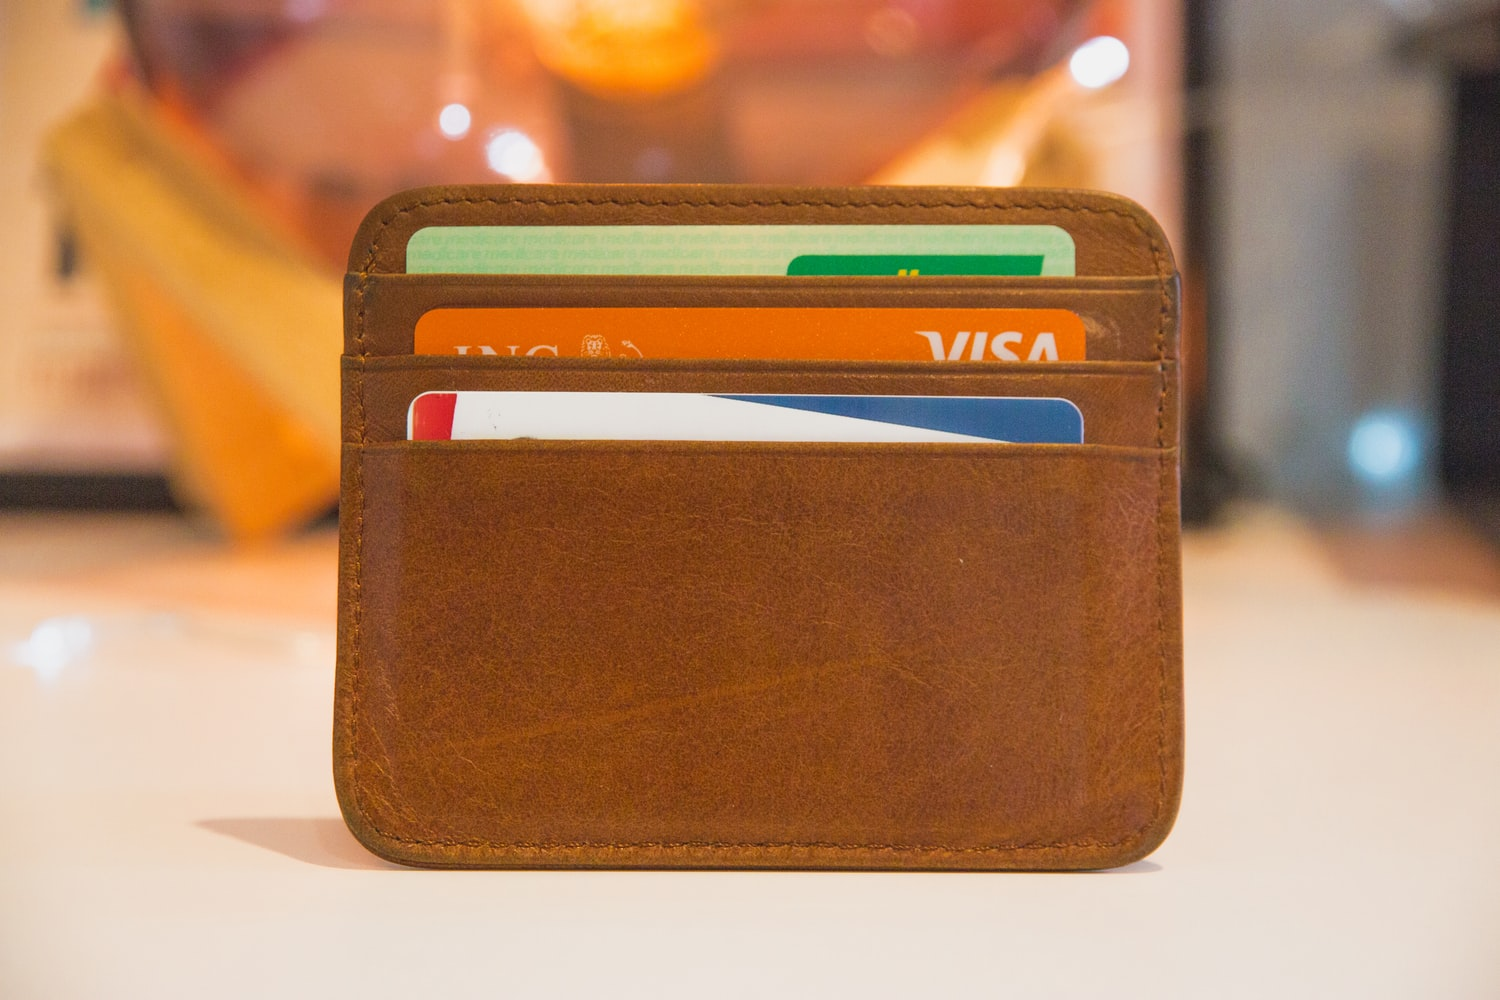 wallet full of various credit cards